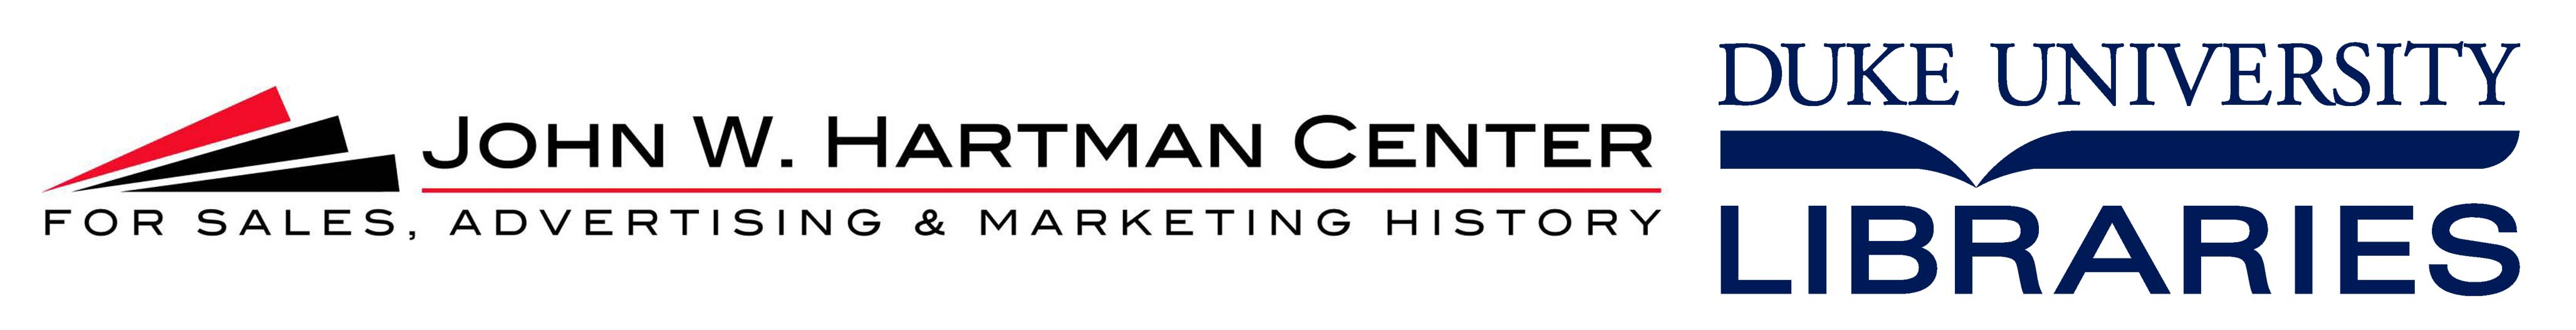 John W. Hartman Center for Sales, Advertising & Marketing History, Duke University